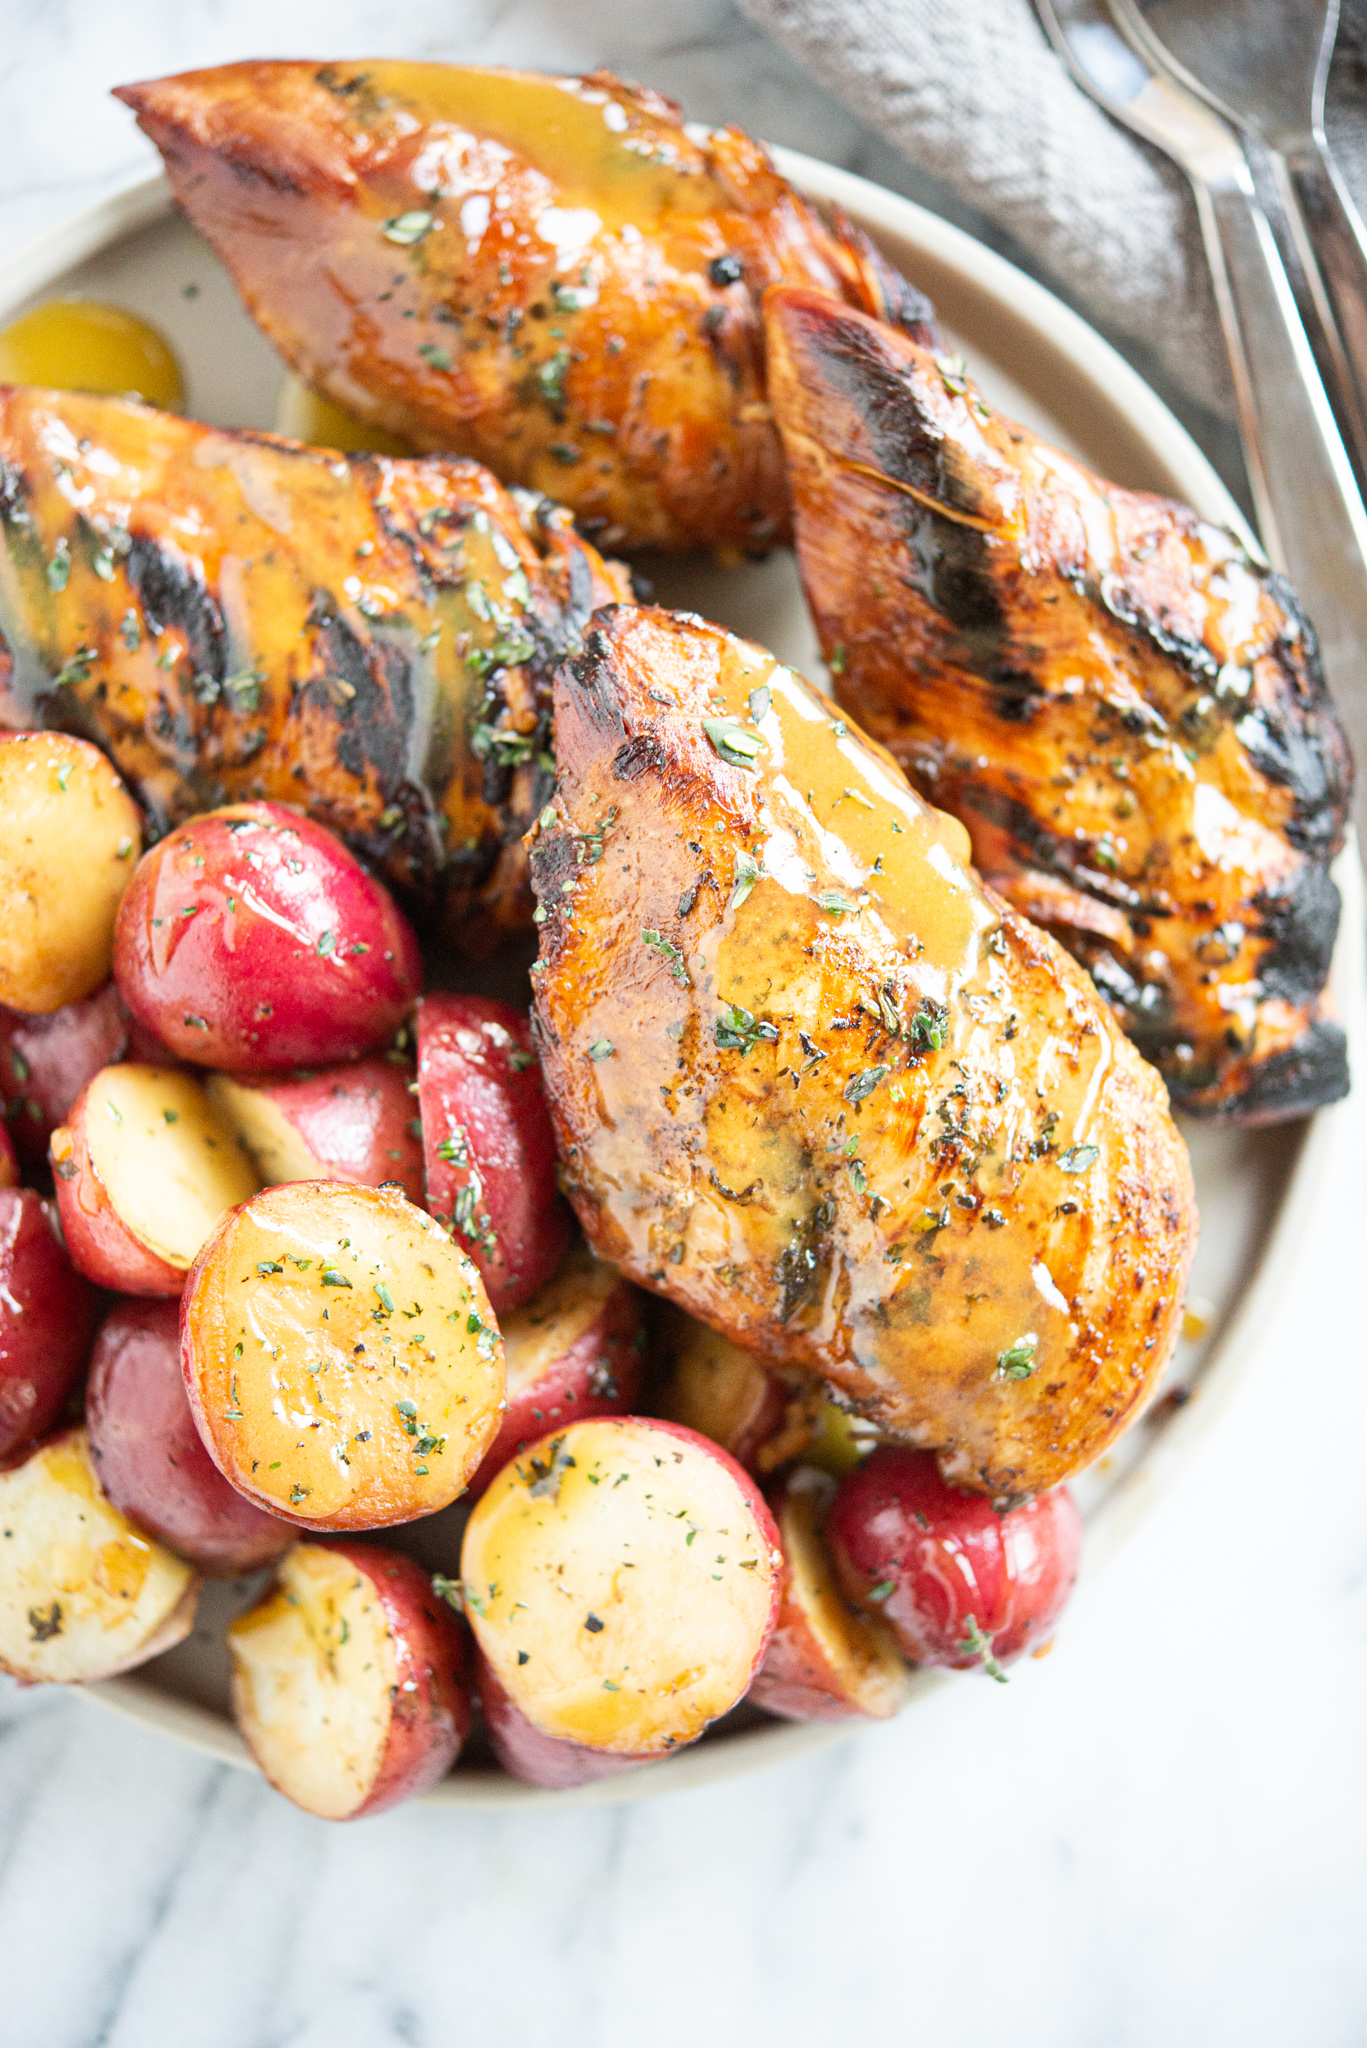 Seared honey mustard chicken and halved red potatoes on a grey plate on a marble surface